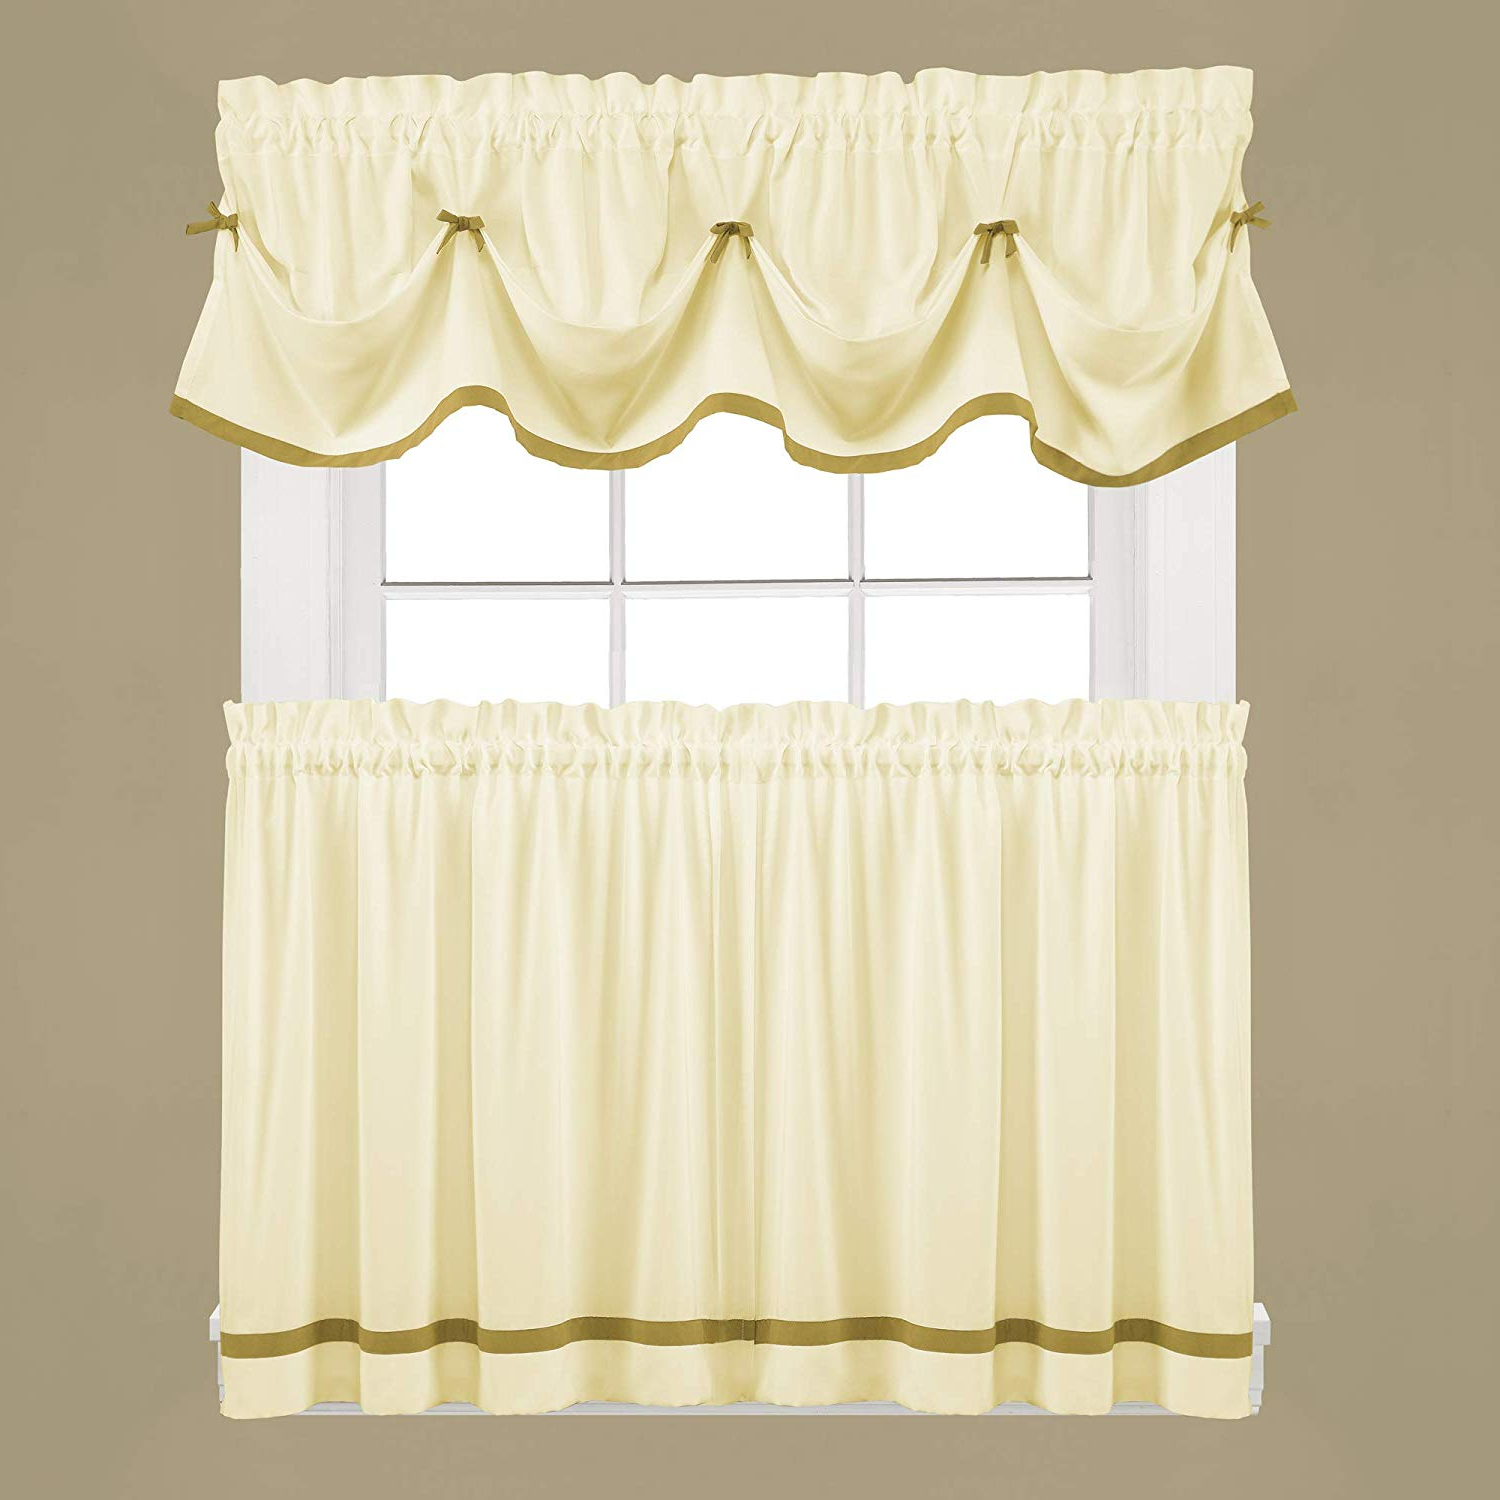 Popular Dove Gray Curtain Tier Pairs Throughout Skl Homesaturday Knight Ltd (View 12 of 20)